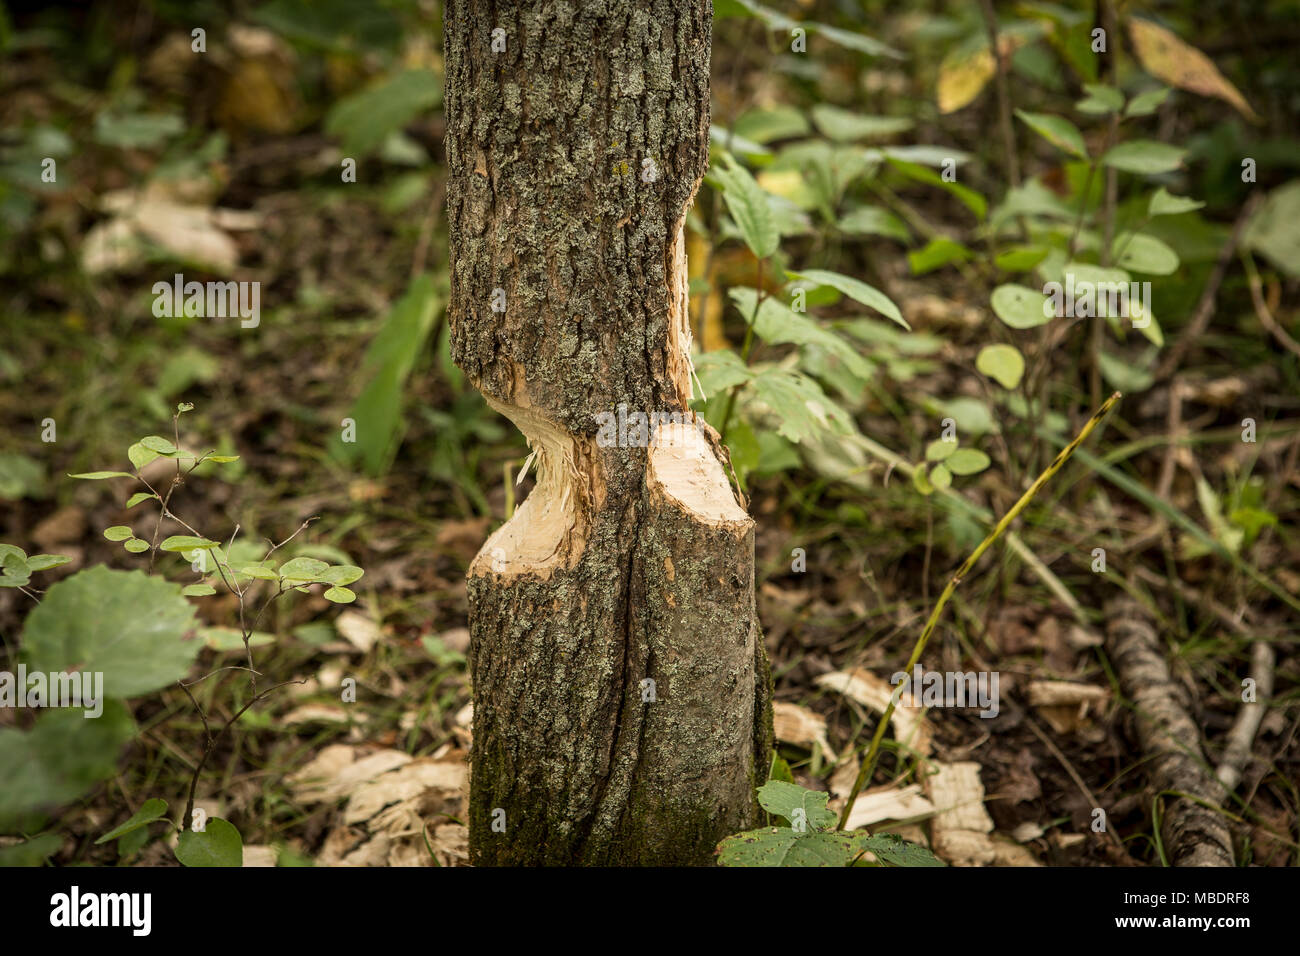 A tree being cut by beavers is seen near Portage La Prairie, Manitoba, Monday August 17, 2015. - Stock Image